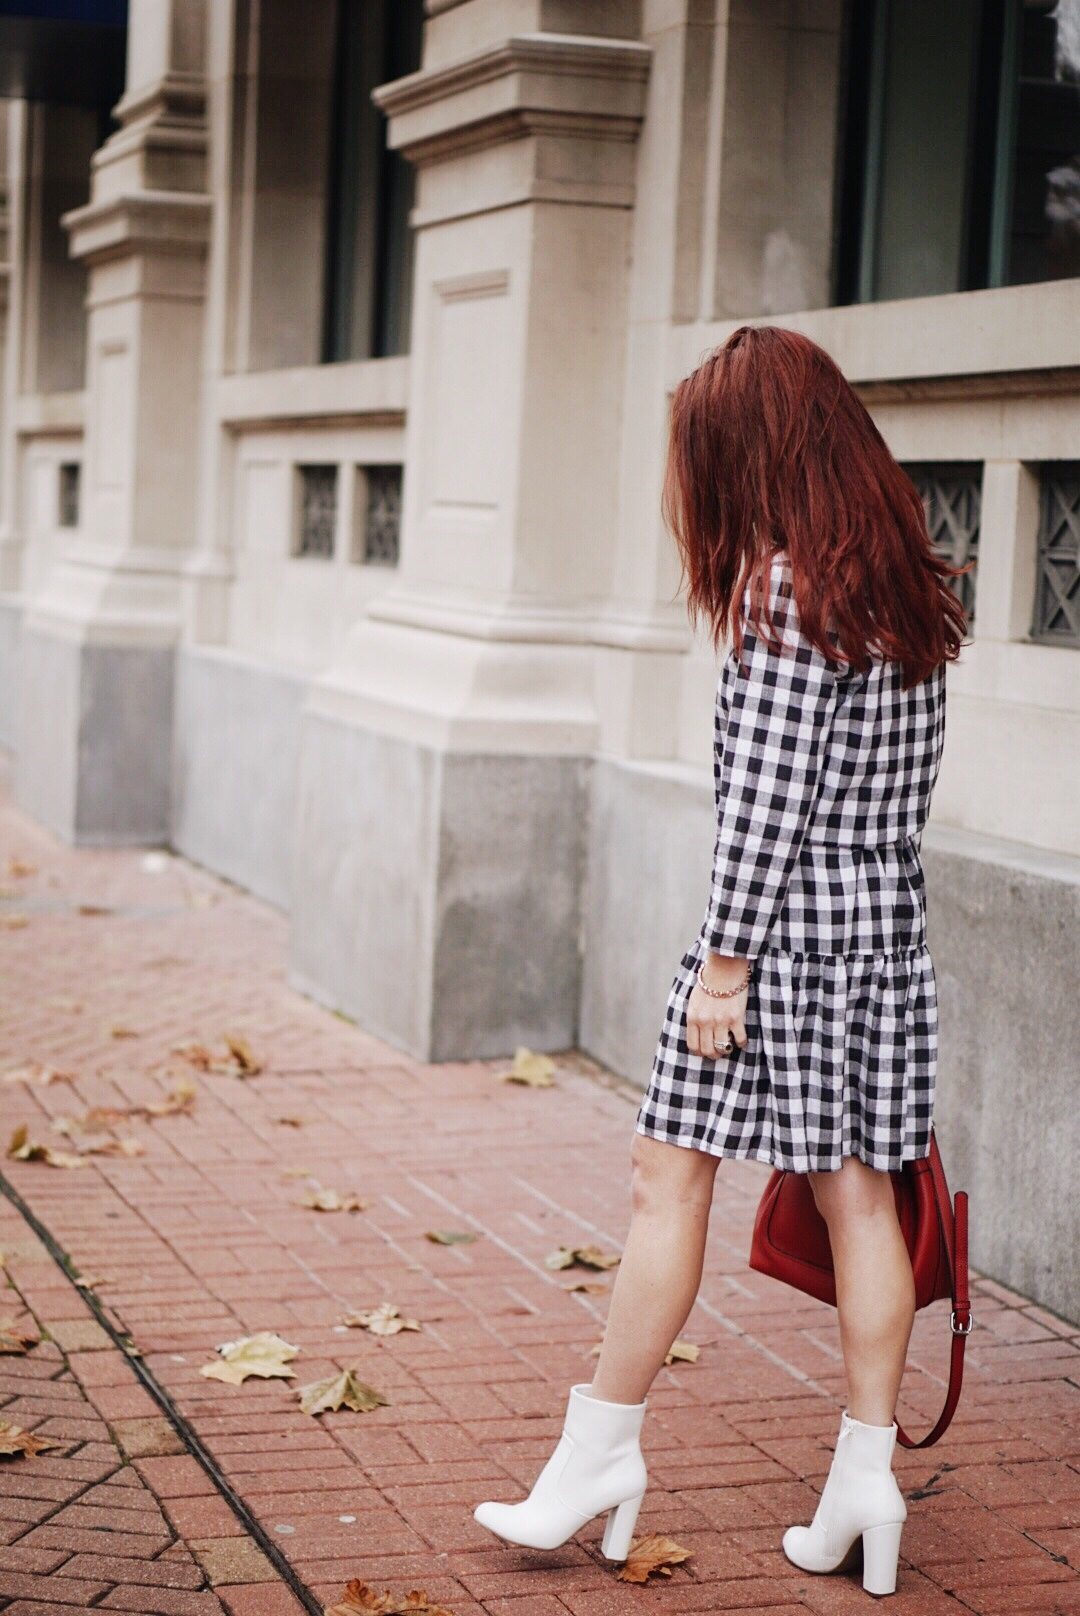 white boots, street style, casual dress, gingham, valentines day outfit ideas